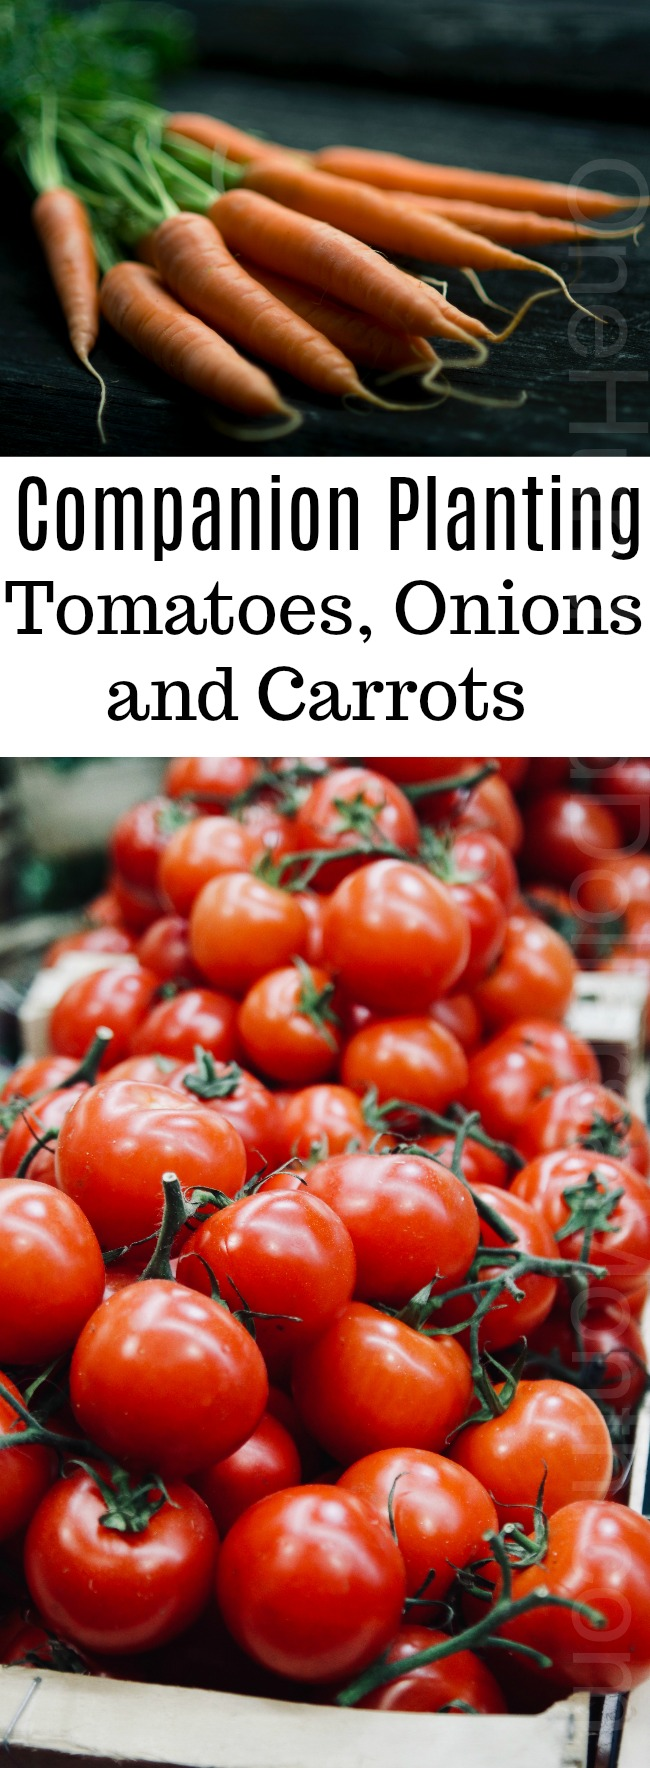 Companion Planting: Tomatoes, Onions and Carrots